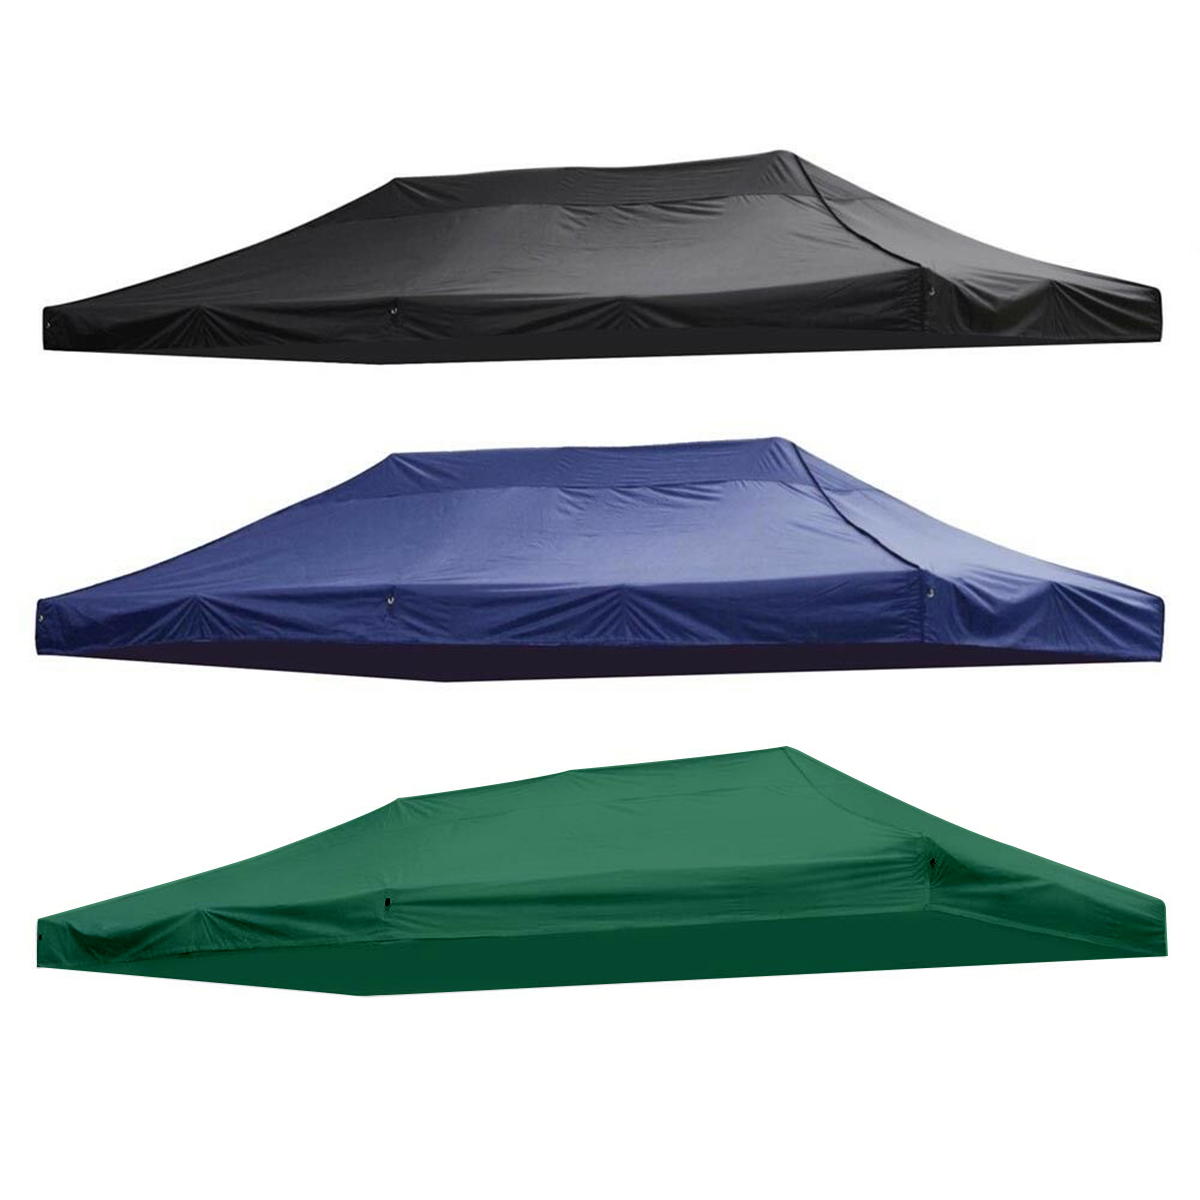 3X6M 10X20Ft 420D Waterproof Oxford Cloth Sunshade Outdoor Traveling Hiking Camping Tent